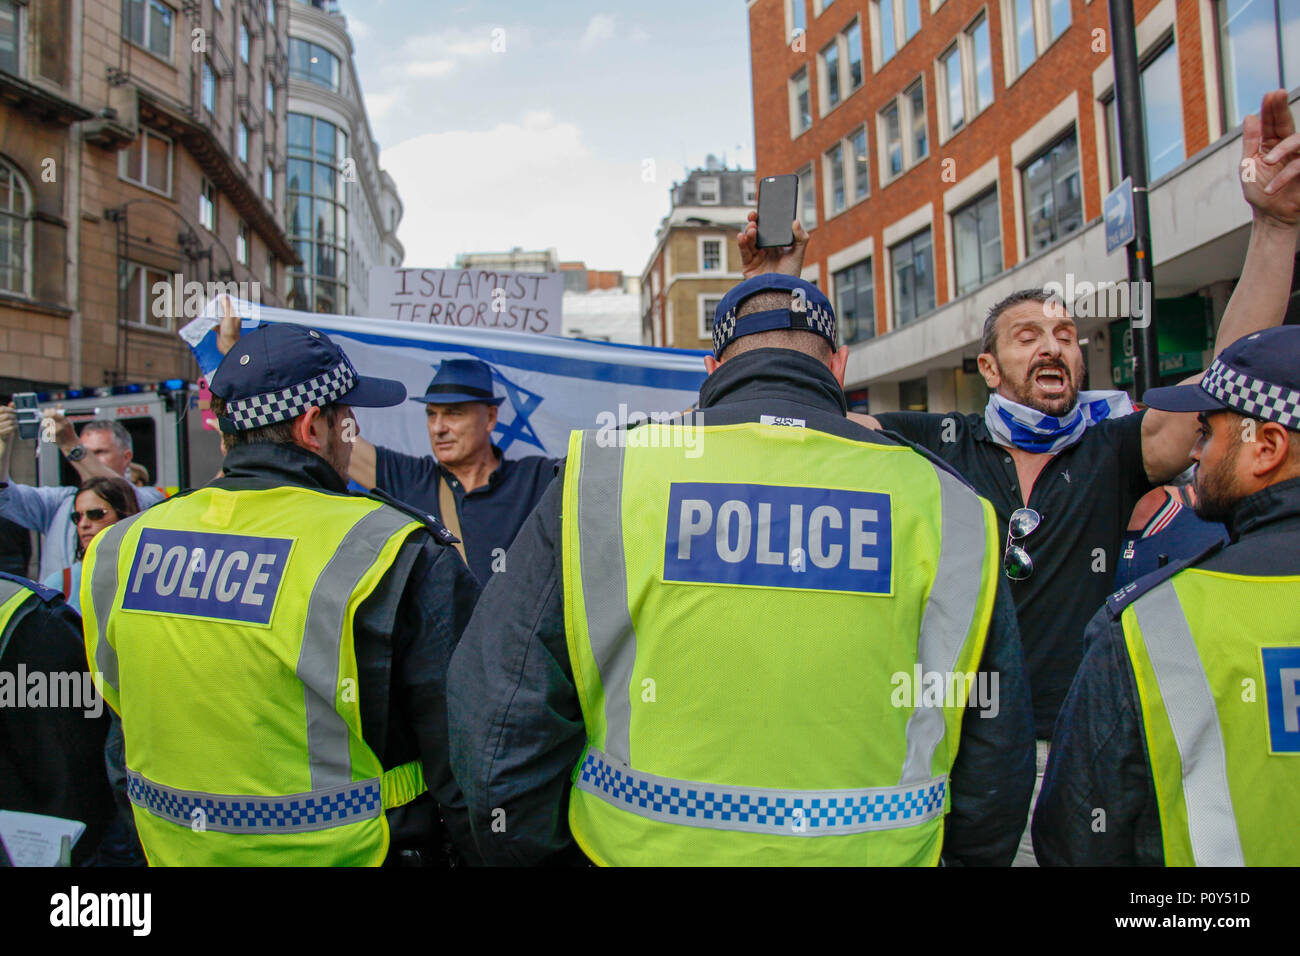 London, UK. 10th June 2018. Police hold back Israeli Counter-Demo at the Al-Quds March Credit: Alex Cavendish/Alamy Live News - Stock Image